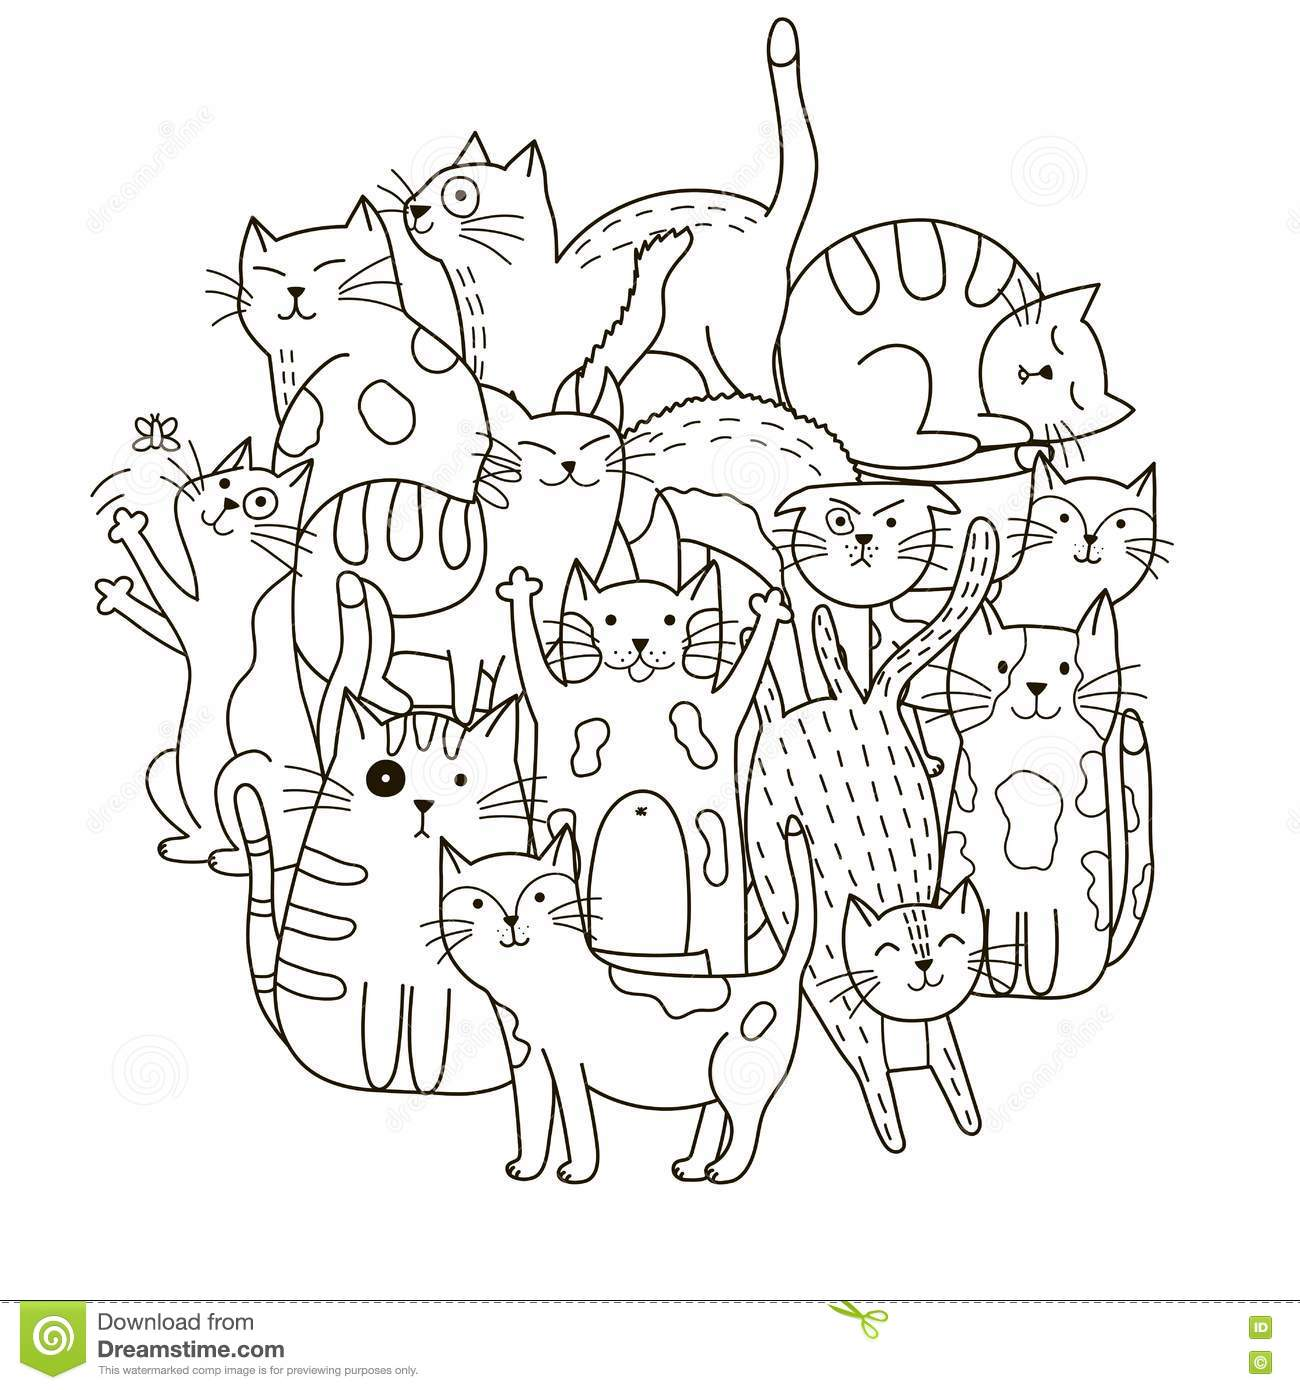 Royalty Free Vector Download Circle Shape Pattern With Cute Cats For Coloring Book